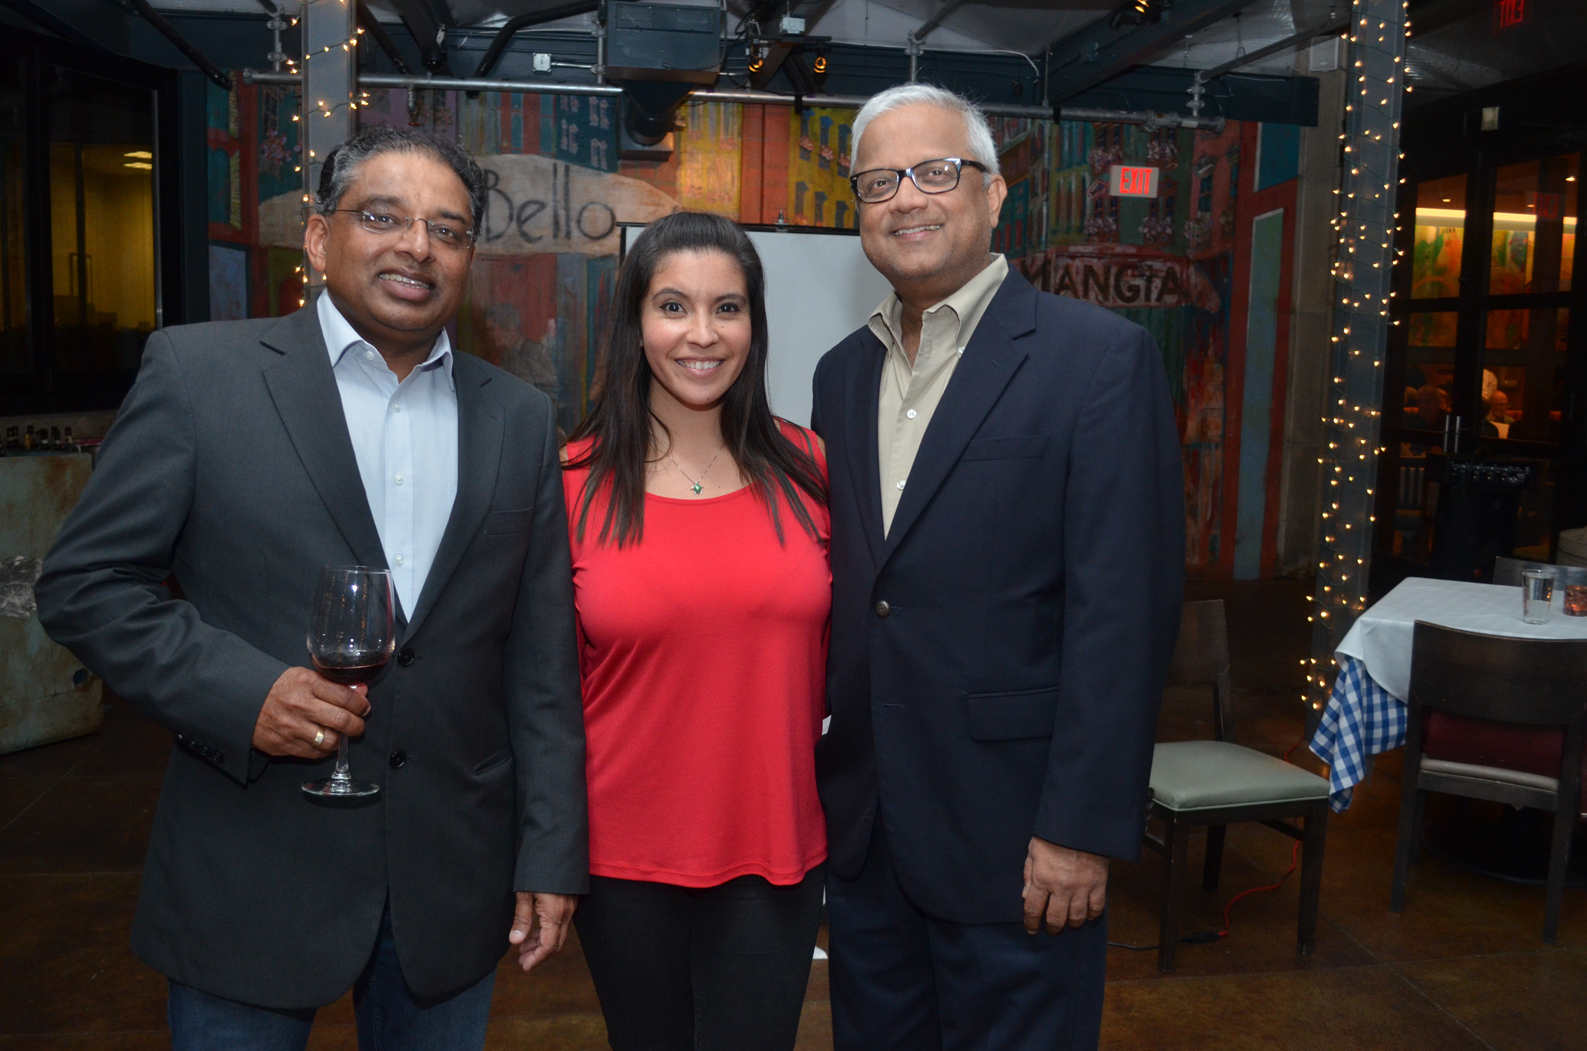 From Left to Right: Vijay Menon, TiE Global Executive Director, Ana Rojas Bastidas, TiE Houston Executive Director and Pradeep Anand, TiE Houston member. Photos credit: Ana Rojas Batidas, TiE Houston Executive Director.